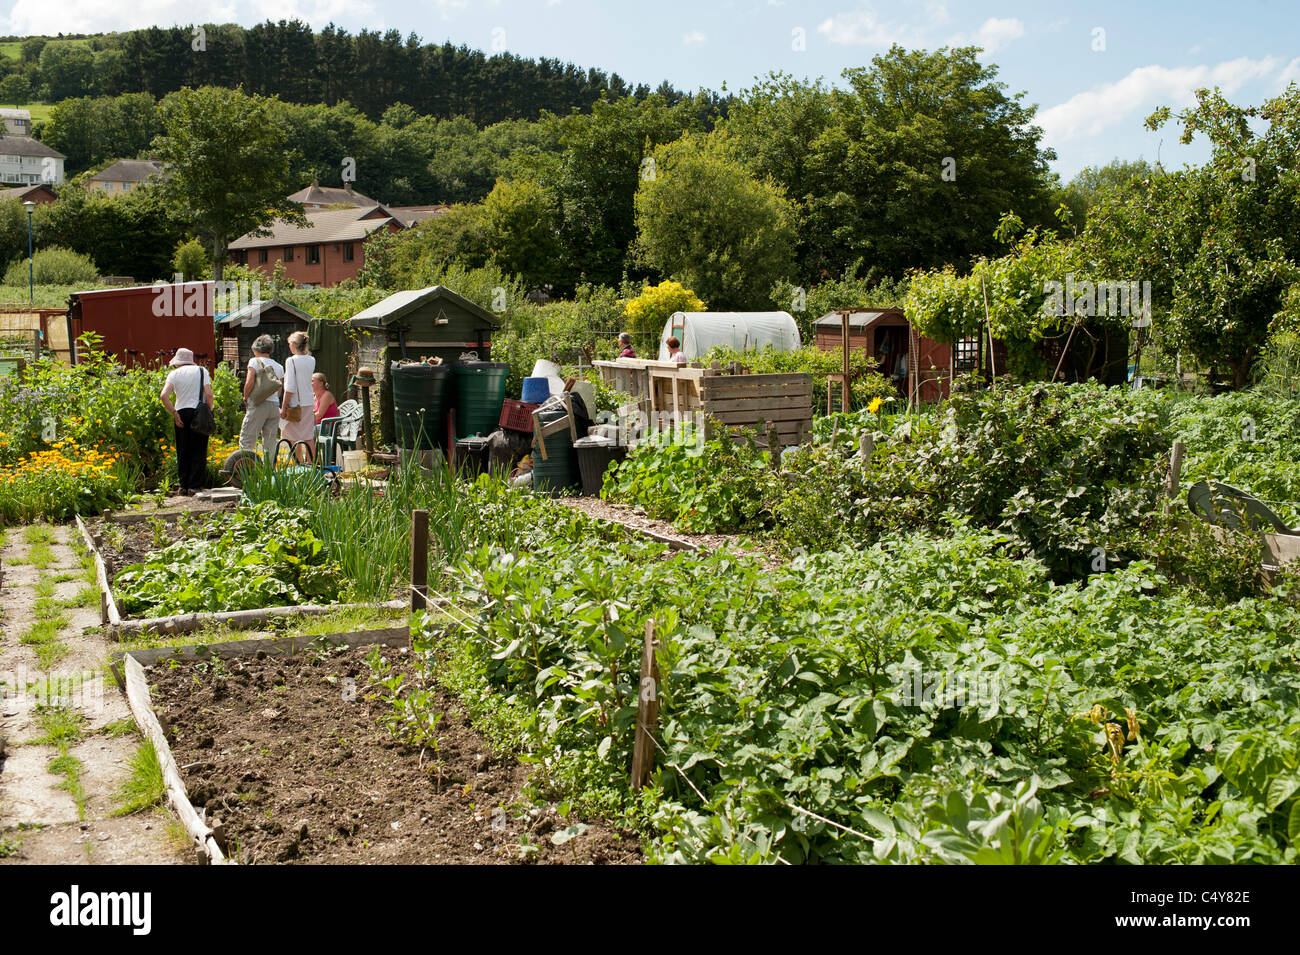 Charming Allotment Gardens Open To The Public On National Garden Society Open Day,  Aberystwyth Wales UK